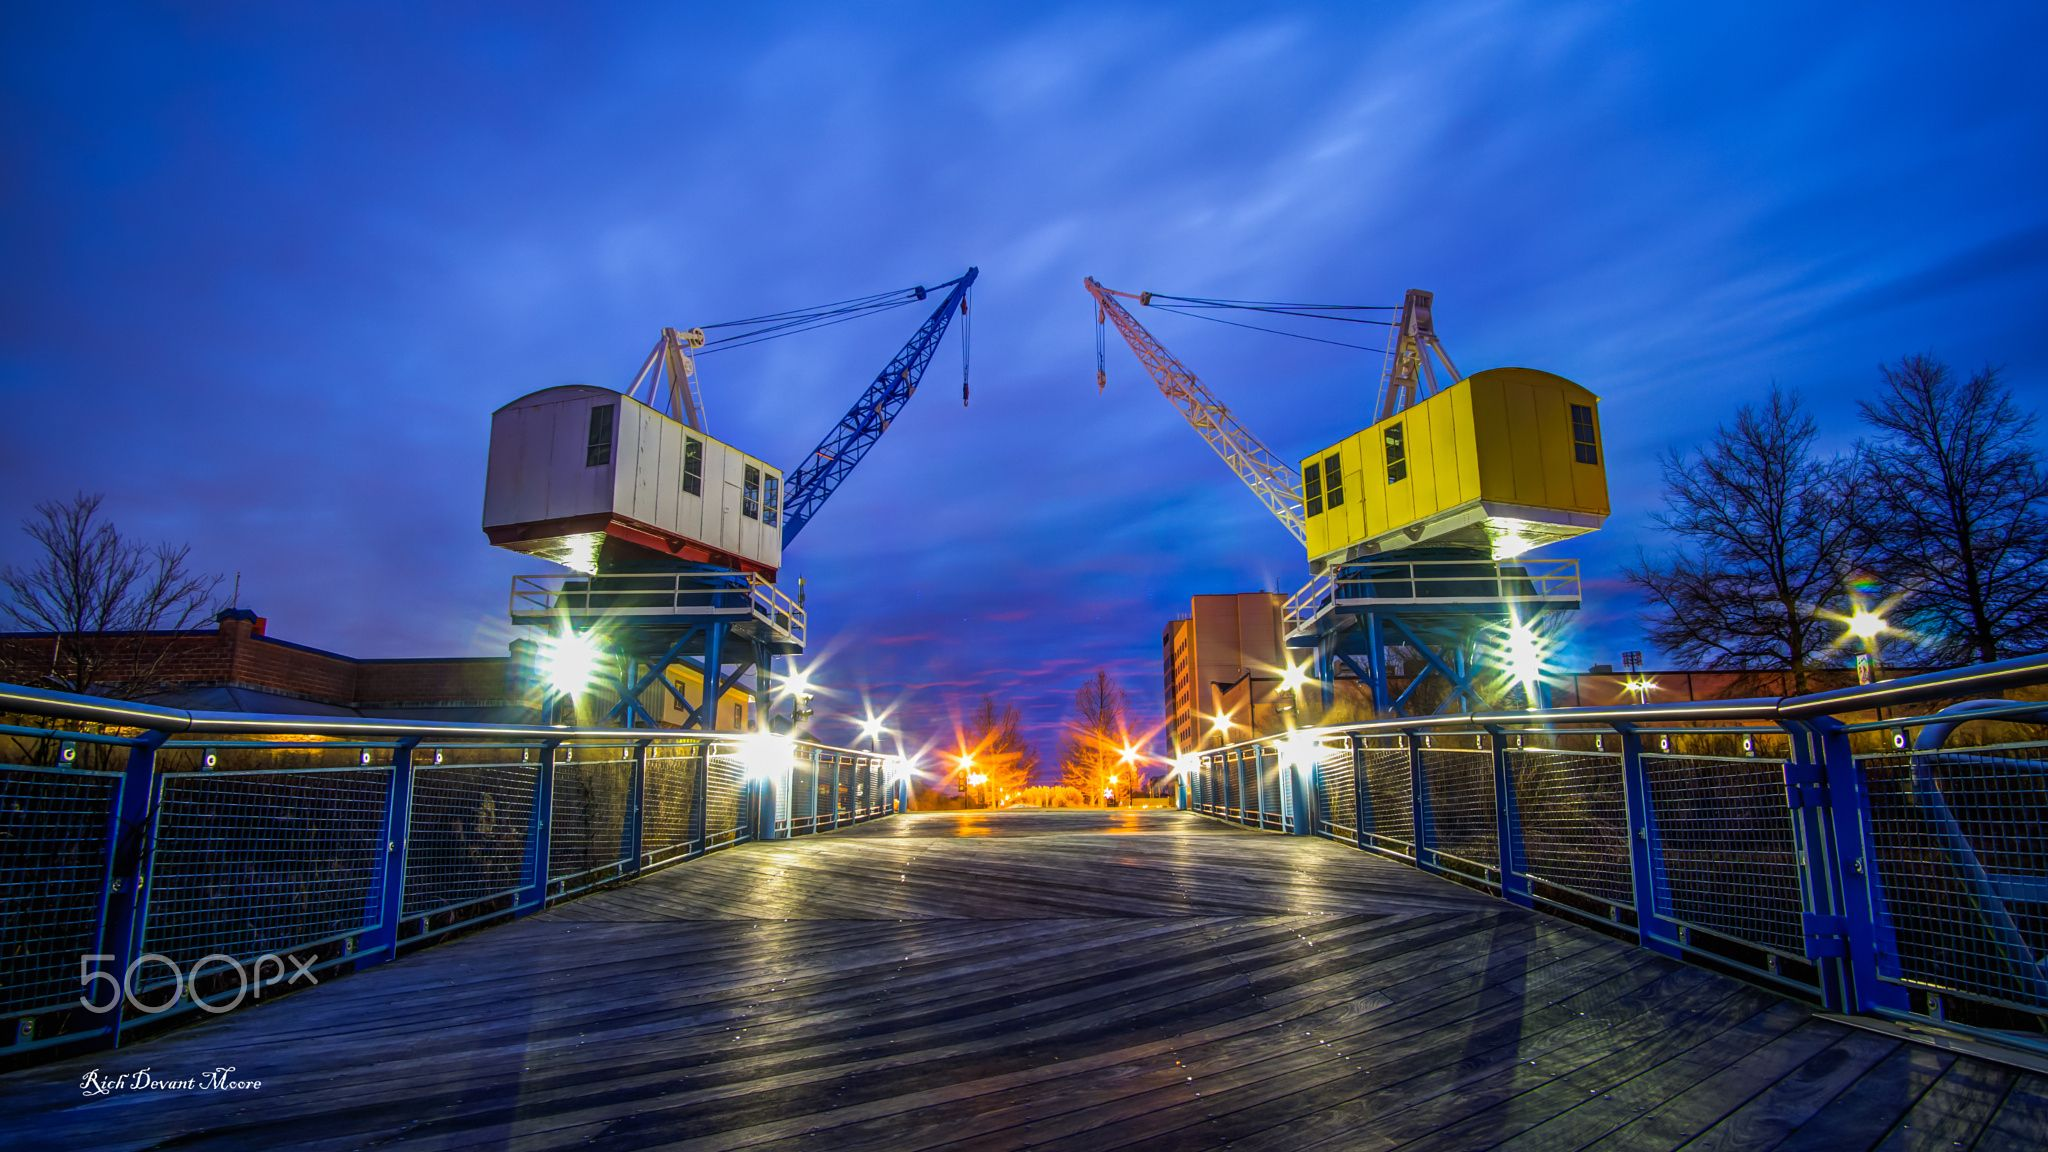 Crayon colored cranes between a blue hour sunset and a